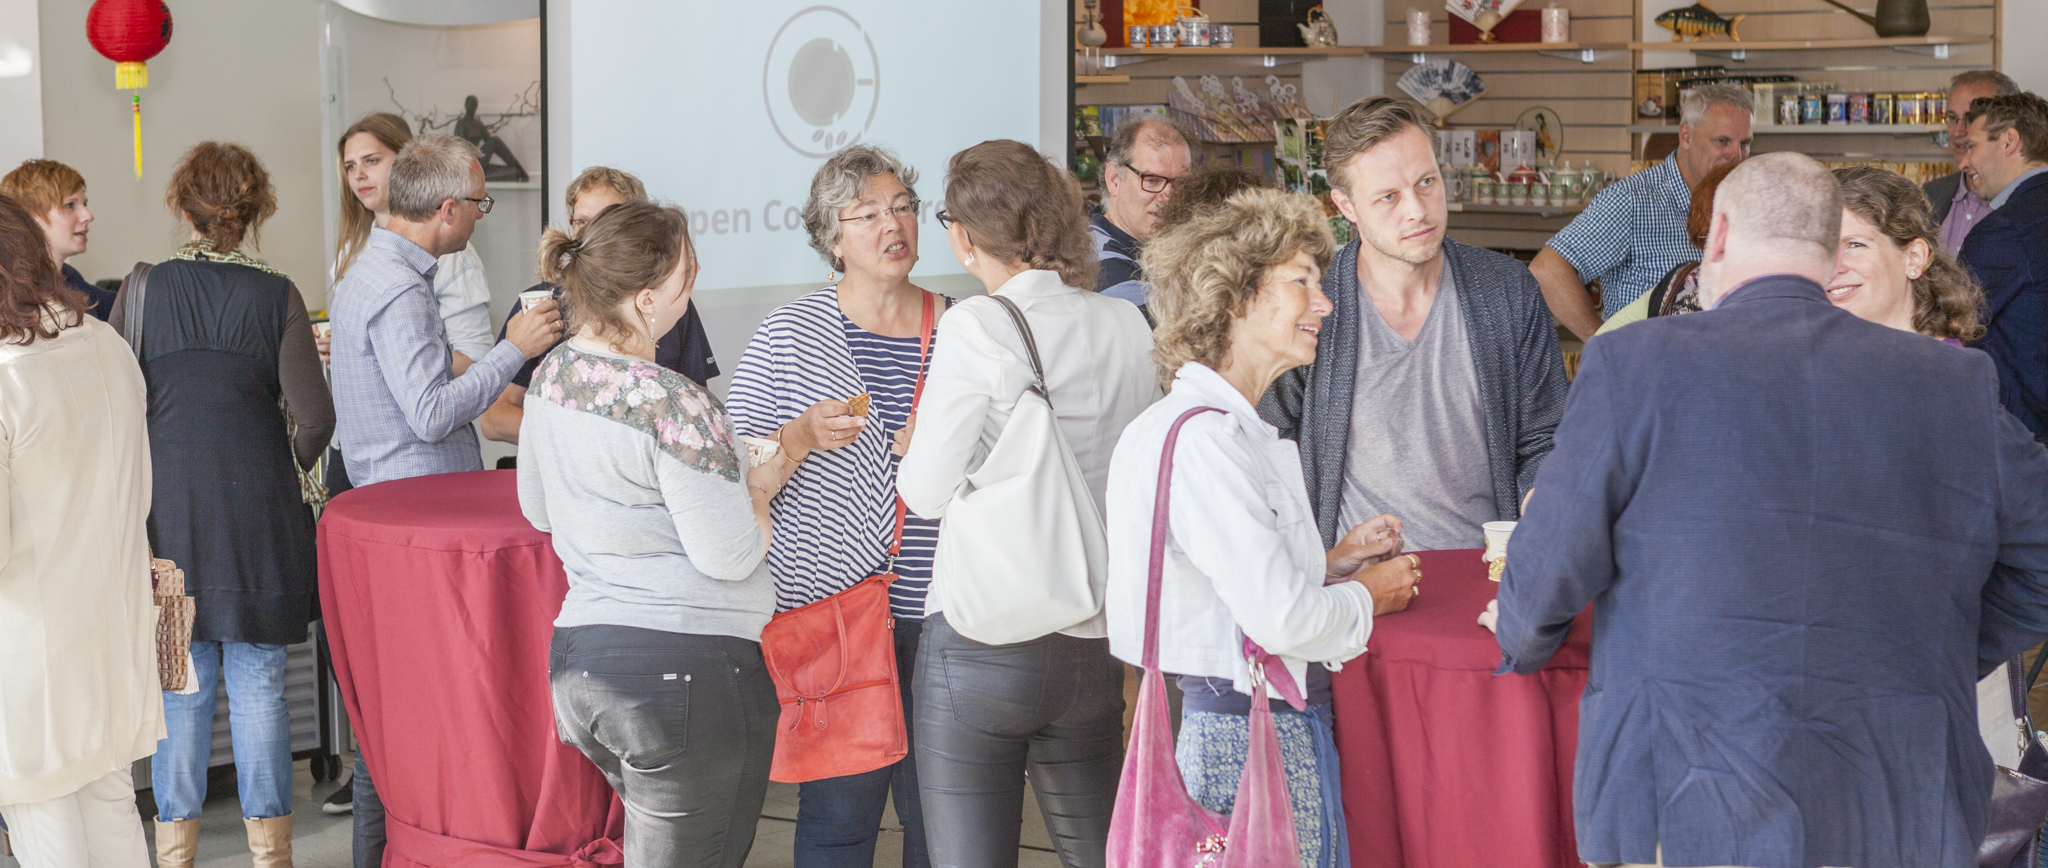 Open Coffee Haren